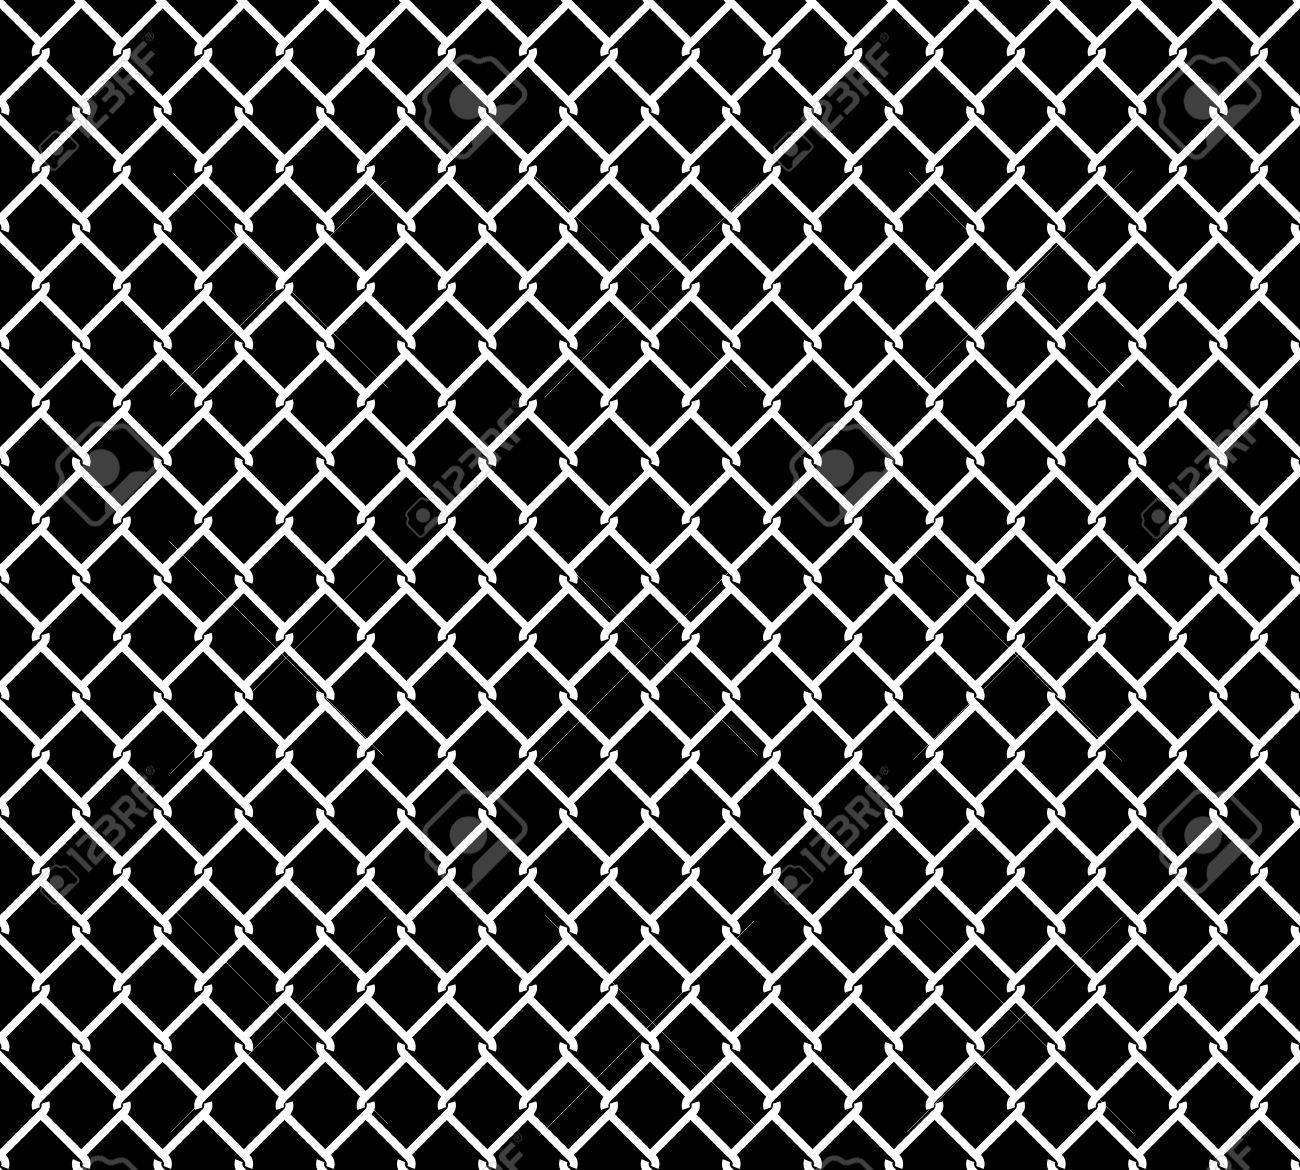 wired metallic fence seamless pattern overlay steel wire mesh